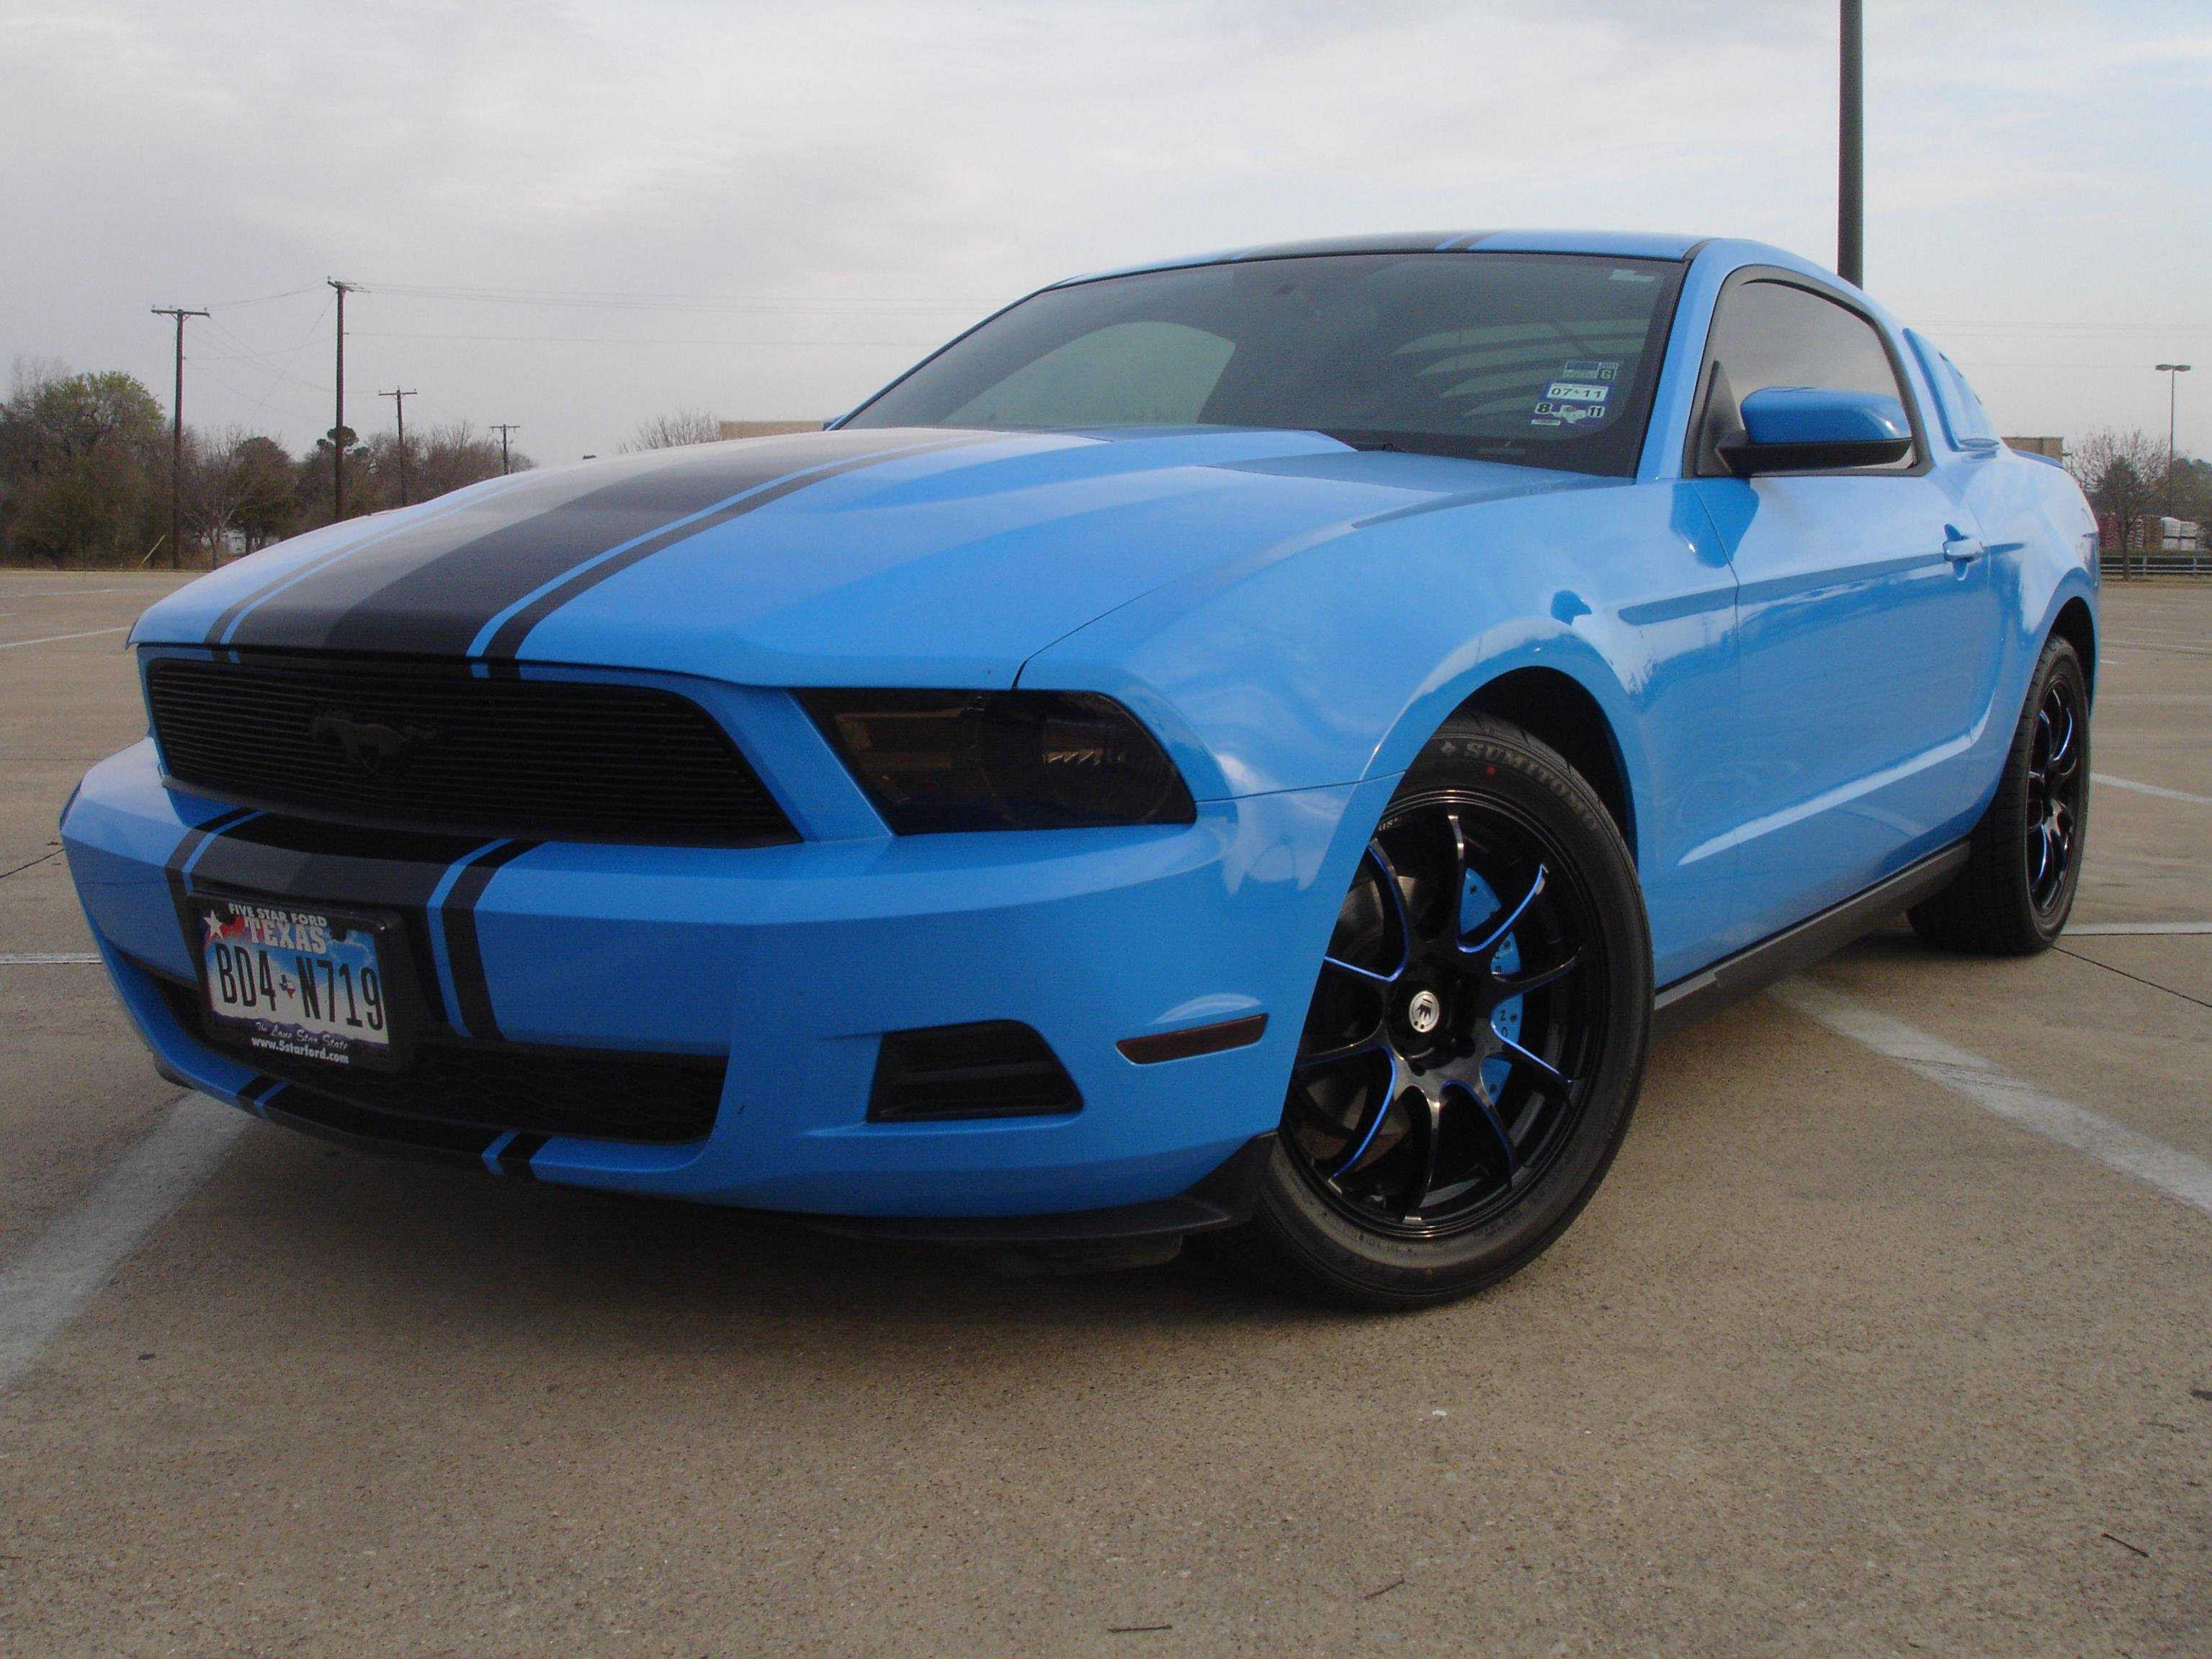 New Wheels And Exterior Mods Ford Mustang Forum